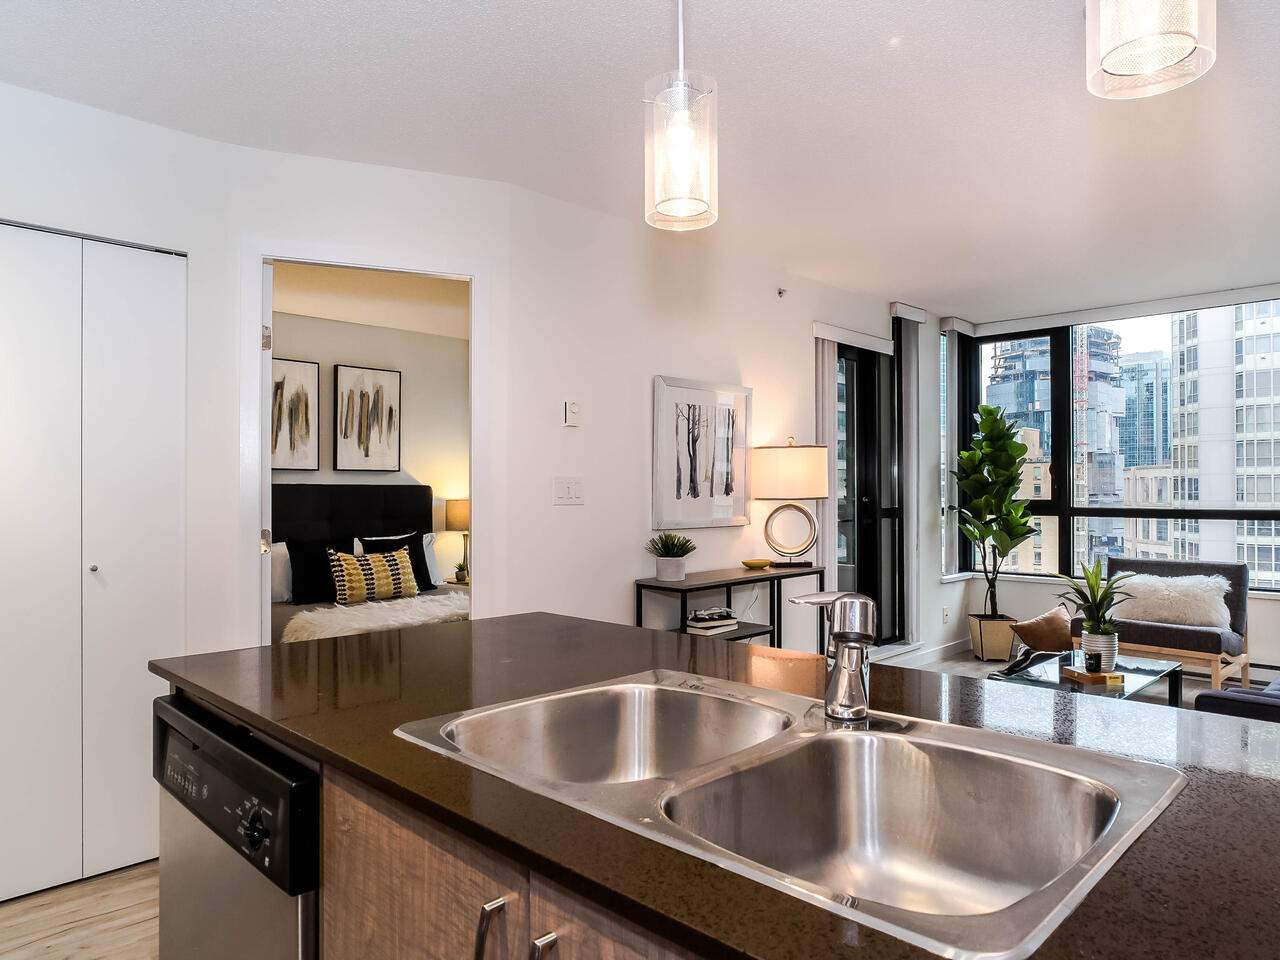 1810 909 MAINLAND STREET - Yaletown Apartment/Condo for sale, 1 Bedroom (R2518845) - #5